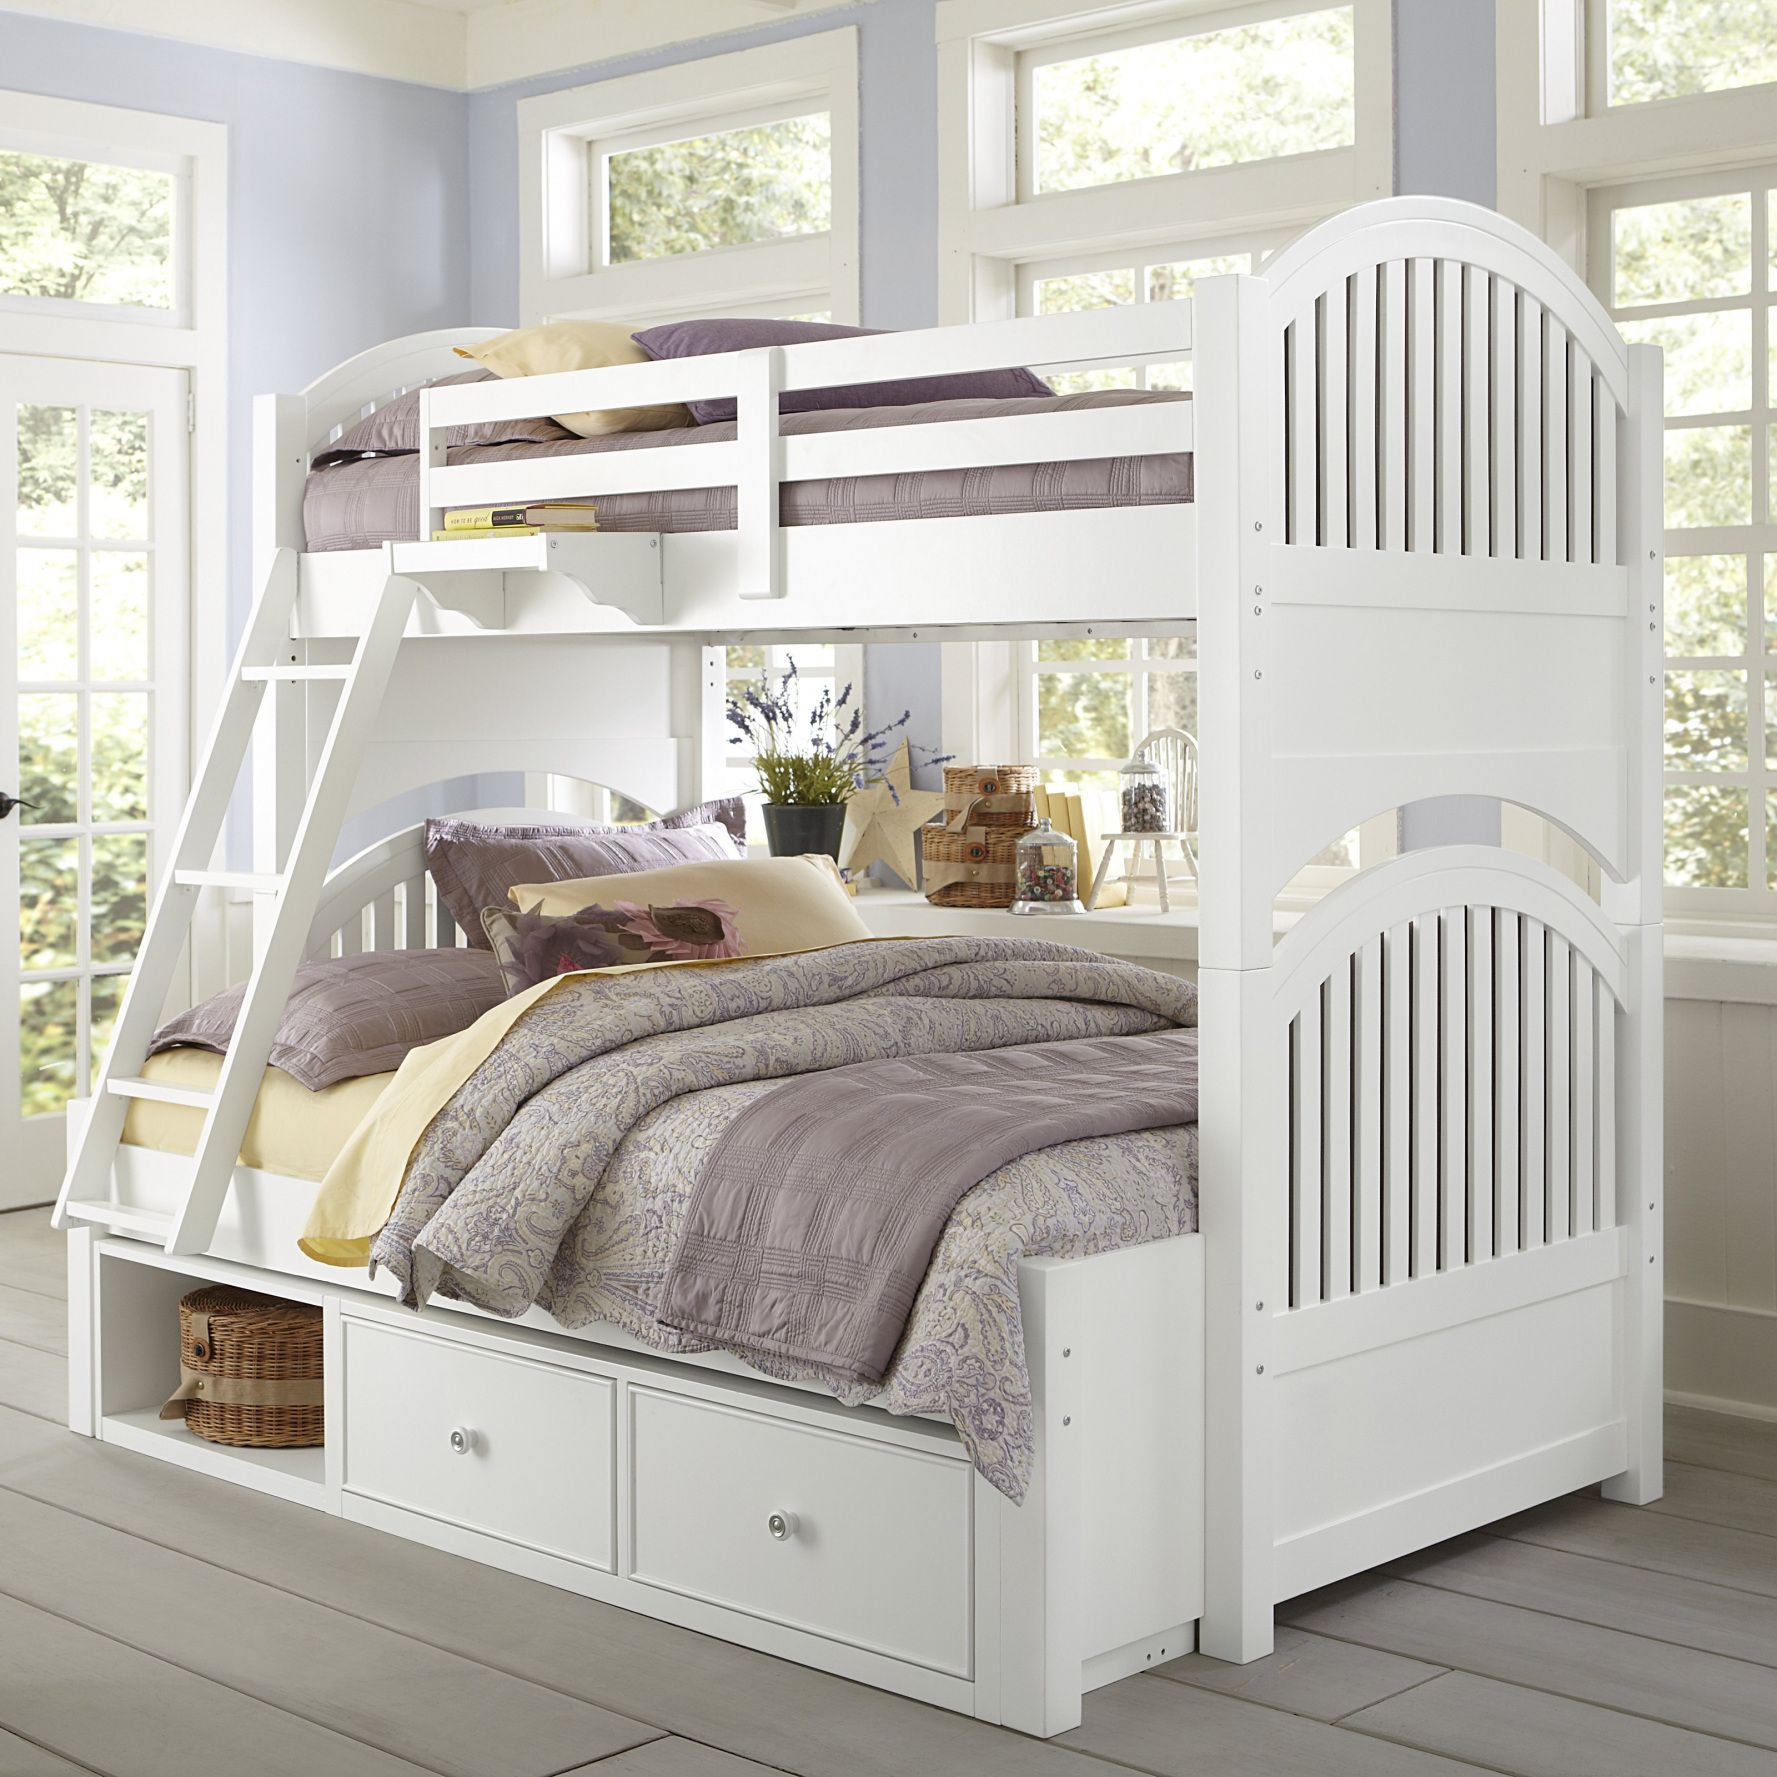 Double loft bed with desk   Twin Over Full Bunk Bed with Trundle  Interior Paint Colors